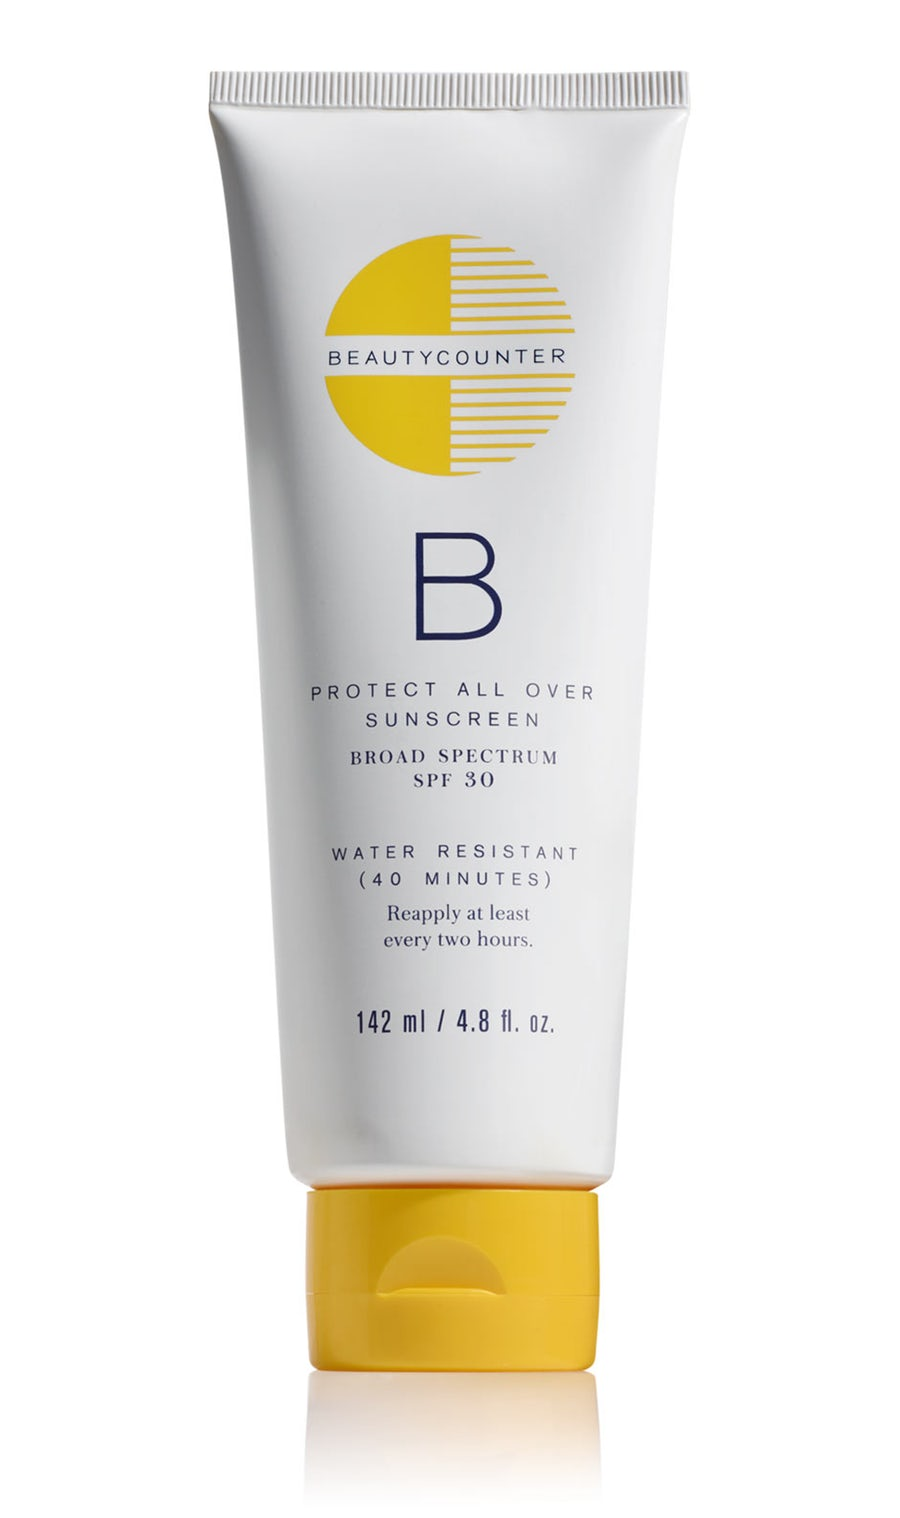 My favorite clean sunscreen!   This lightweight, water-resistant sunscreen is formulated with non-nano zinc oxide, an effective mineral sun-blocker. It blends seamlessly into skin without leaving white streaks and protects against both UVA and UVB rays. Aloe helps hydrate skin while antioxidant-rich blood orange extract fights free radicals.  Check it out here!